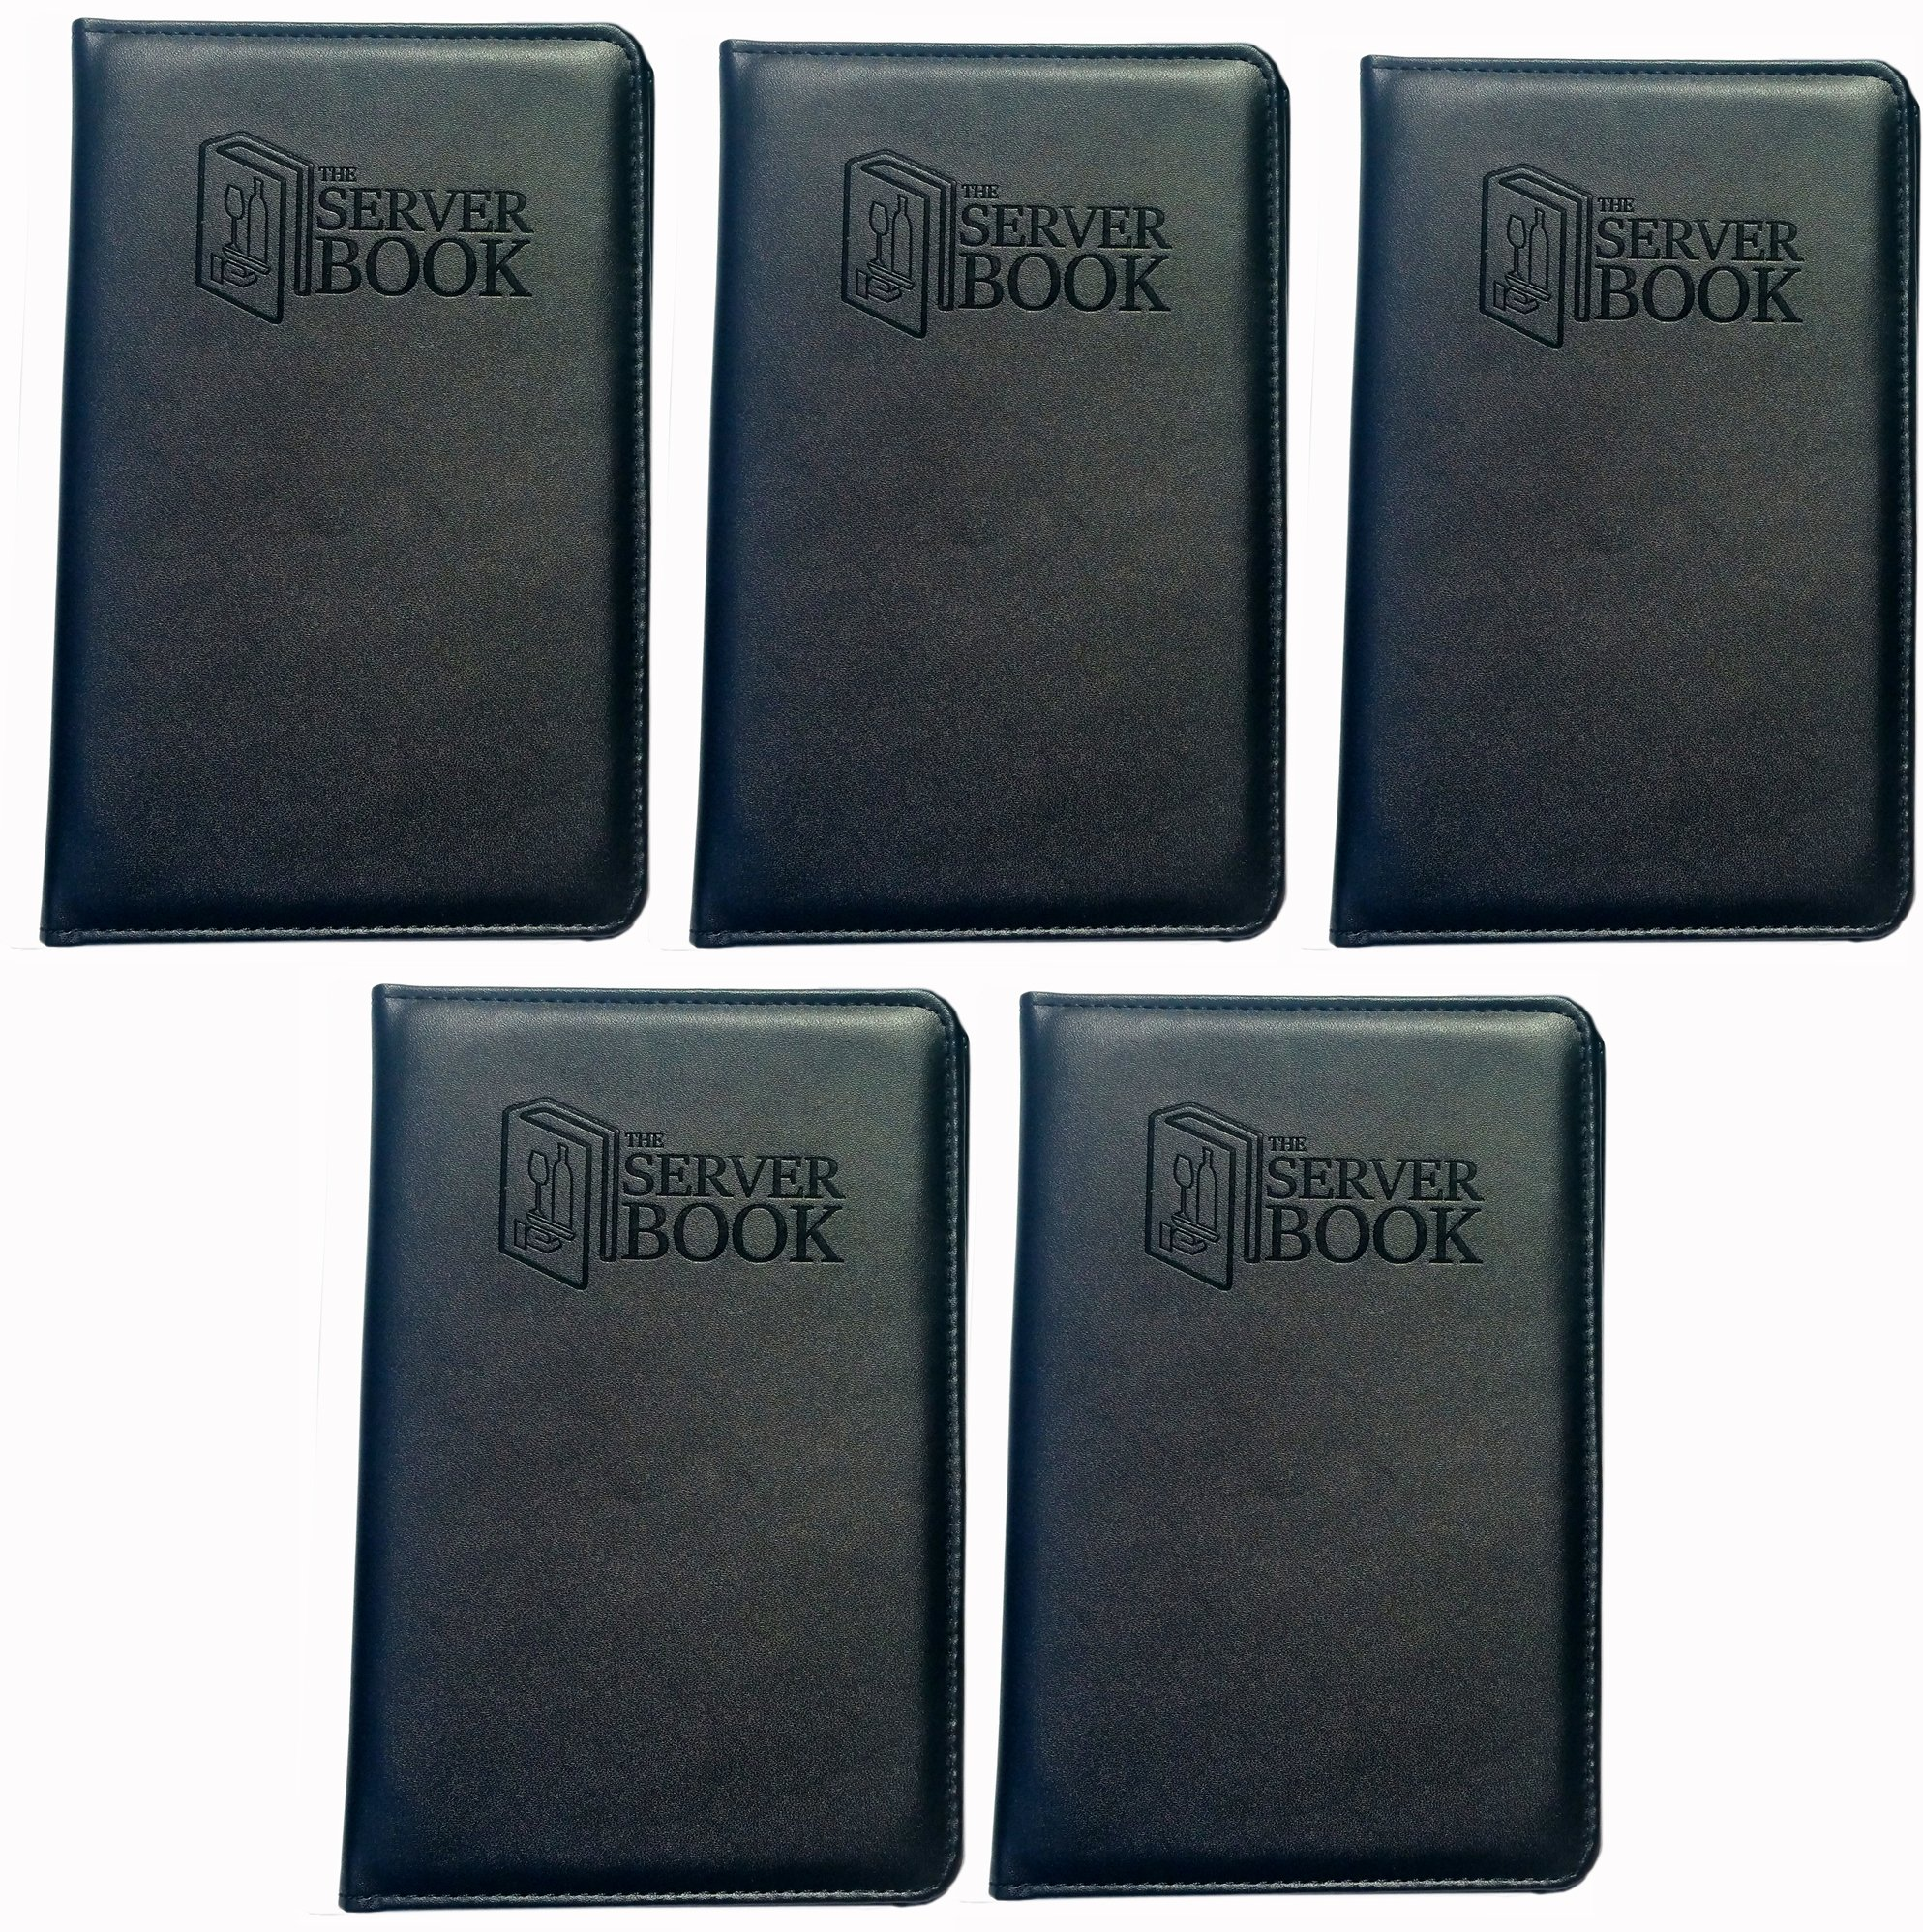 5 Server Books with Zipper Pocket - Black Waitress/Waiter Book with Money Pocket For Every Apron - Food Service Equipment & Supplies - Menu & Guest Check Disiplayers-5.2 x 8 inches (5)